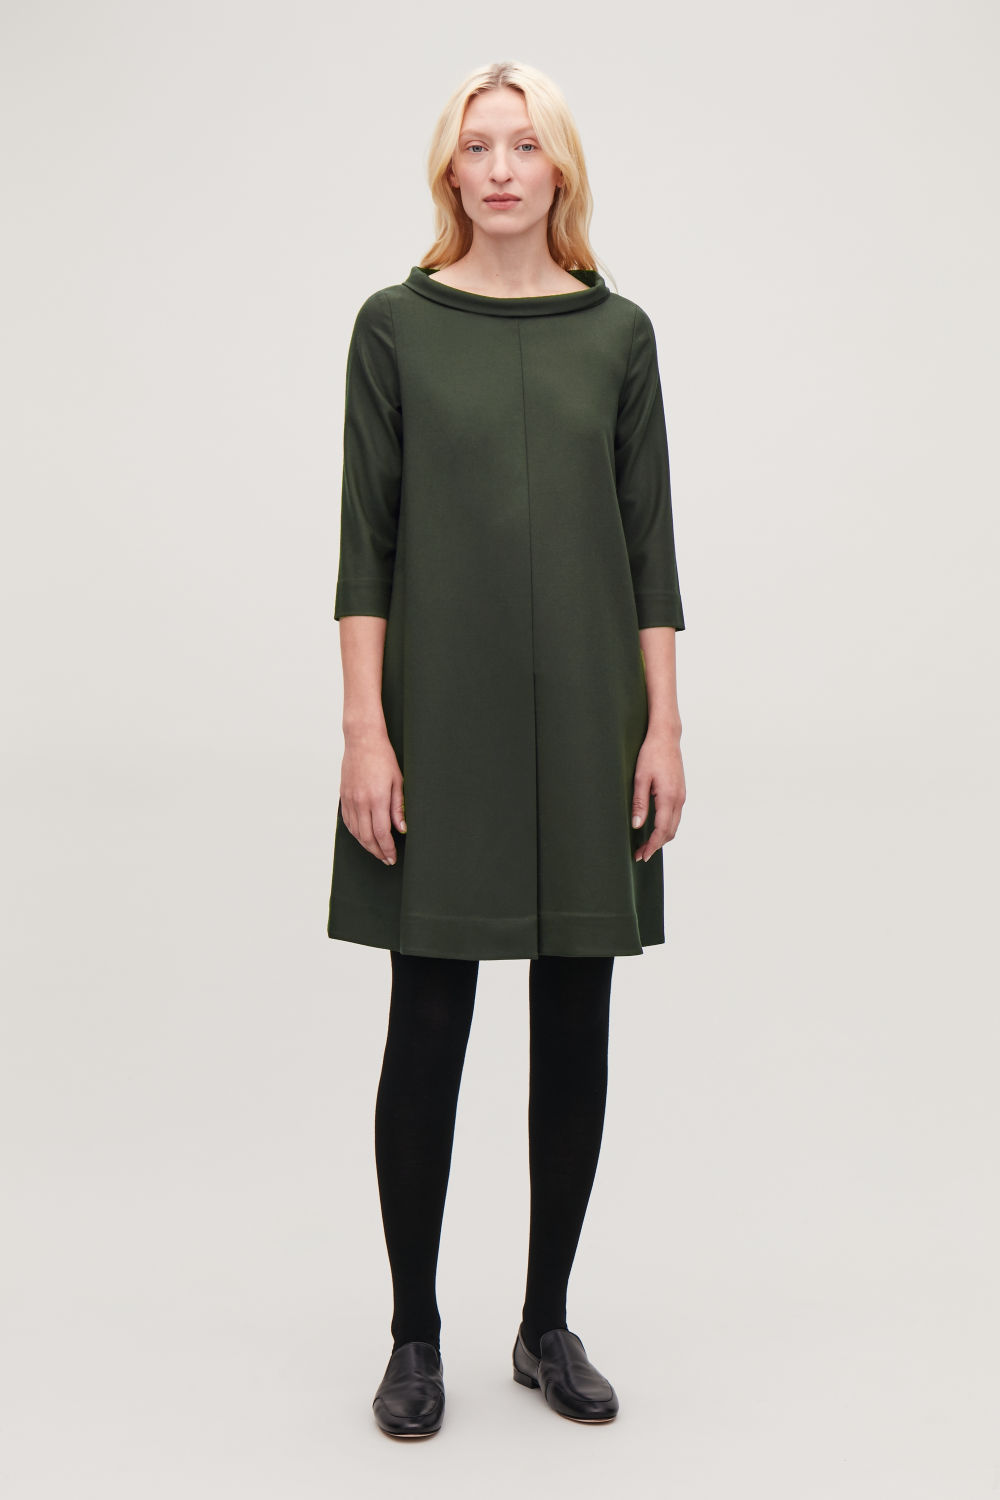 COS FOLDED-COLLAR A-LINE DRESS,Olive Green